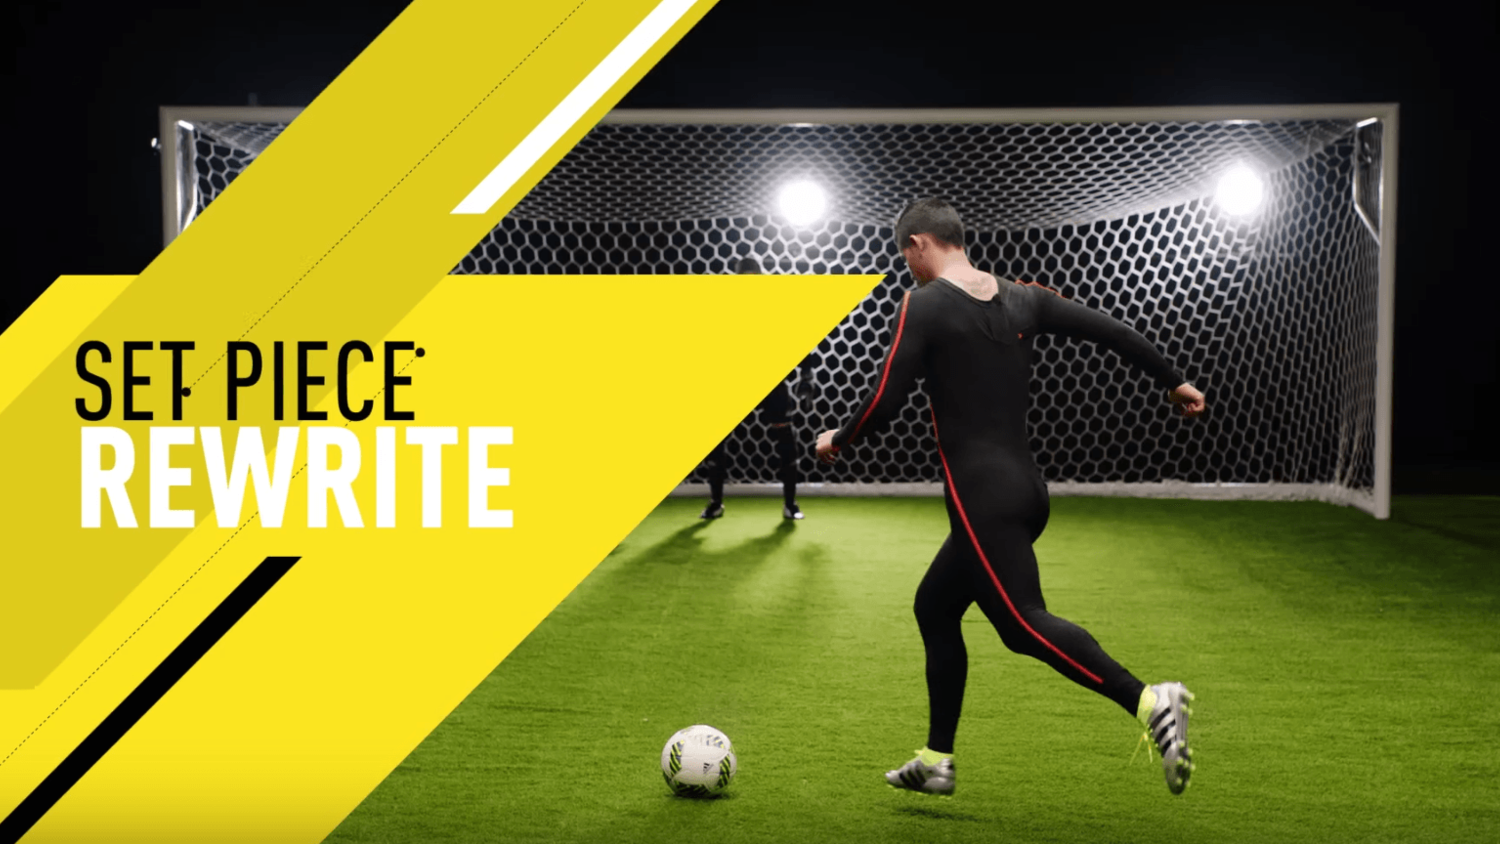 FIFA 17 Introduces Revolutionary Changes to Set Piece System